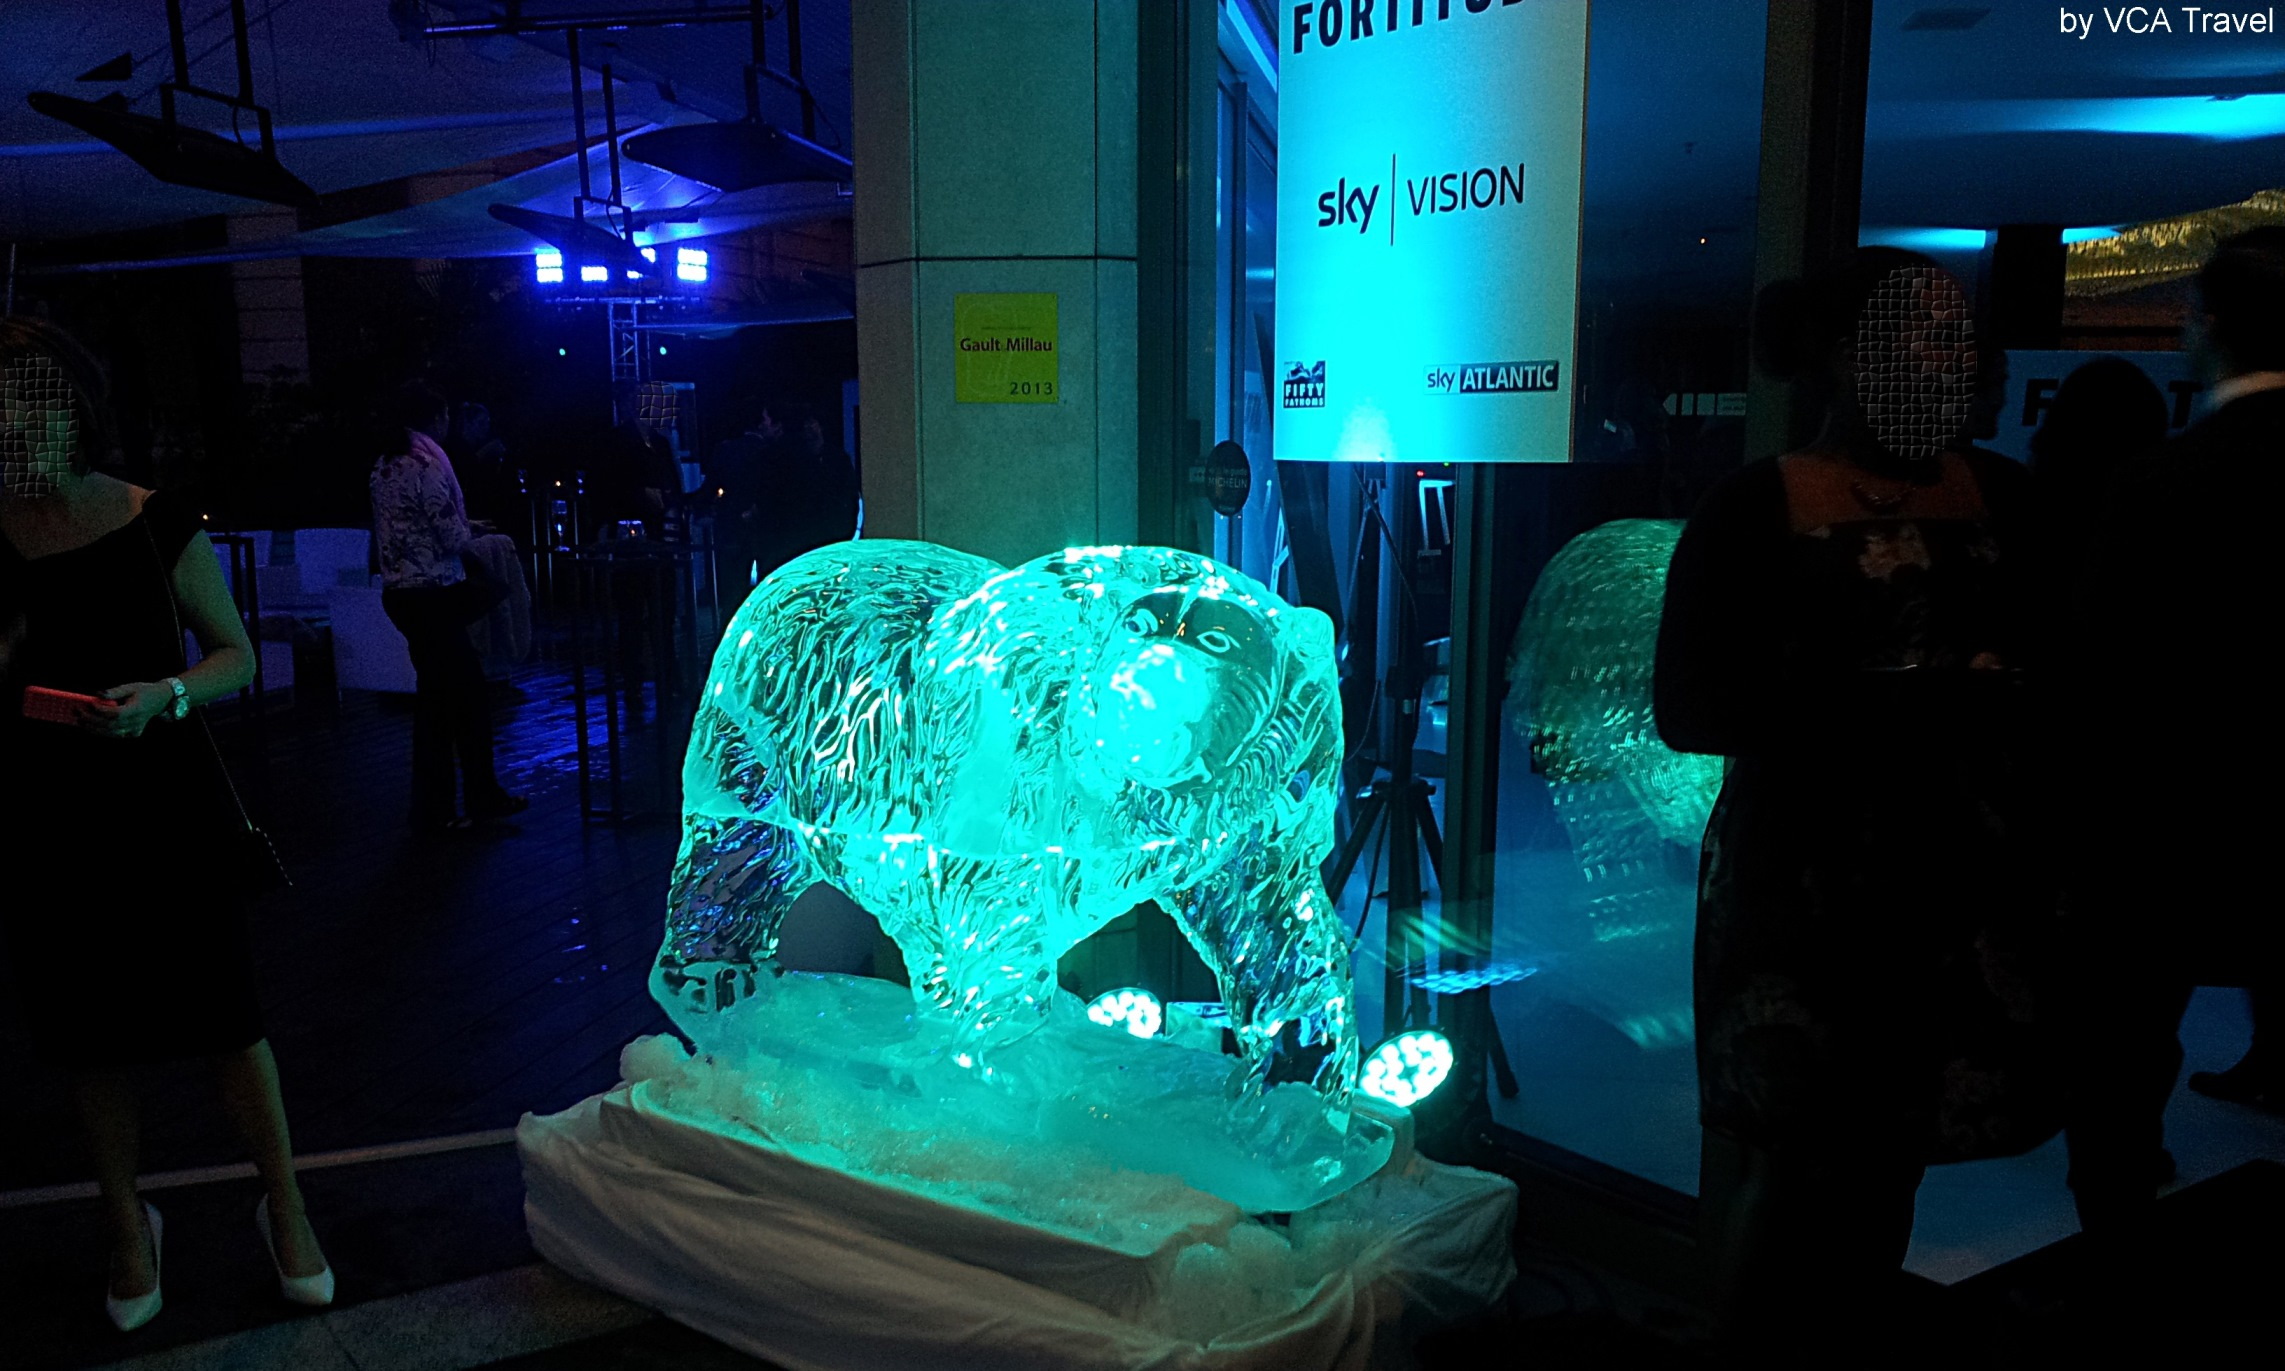 Fortitude Launch Party at MIPCOM - Sky Vision - projecteurs automatiques et leds - immertion - ambiance mêlée de glace et d'aurores boréales - evenement